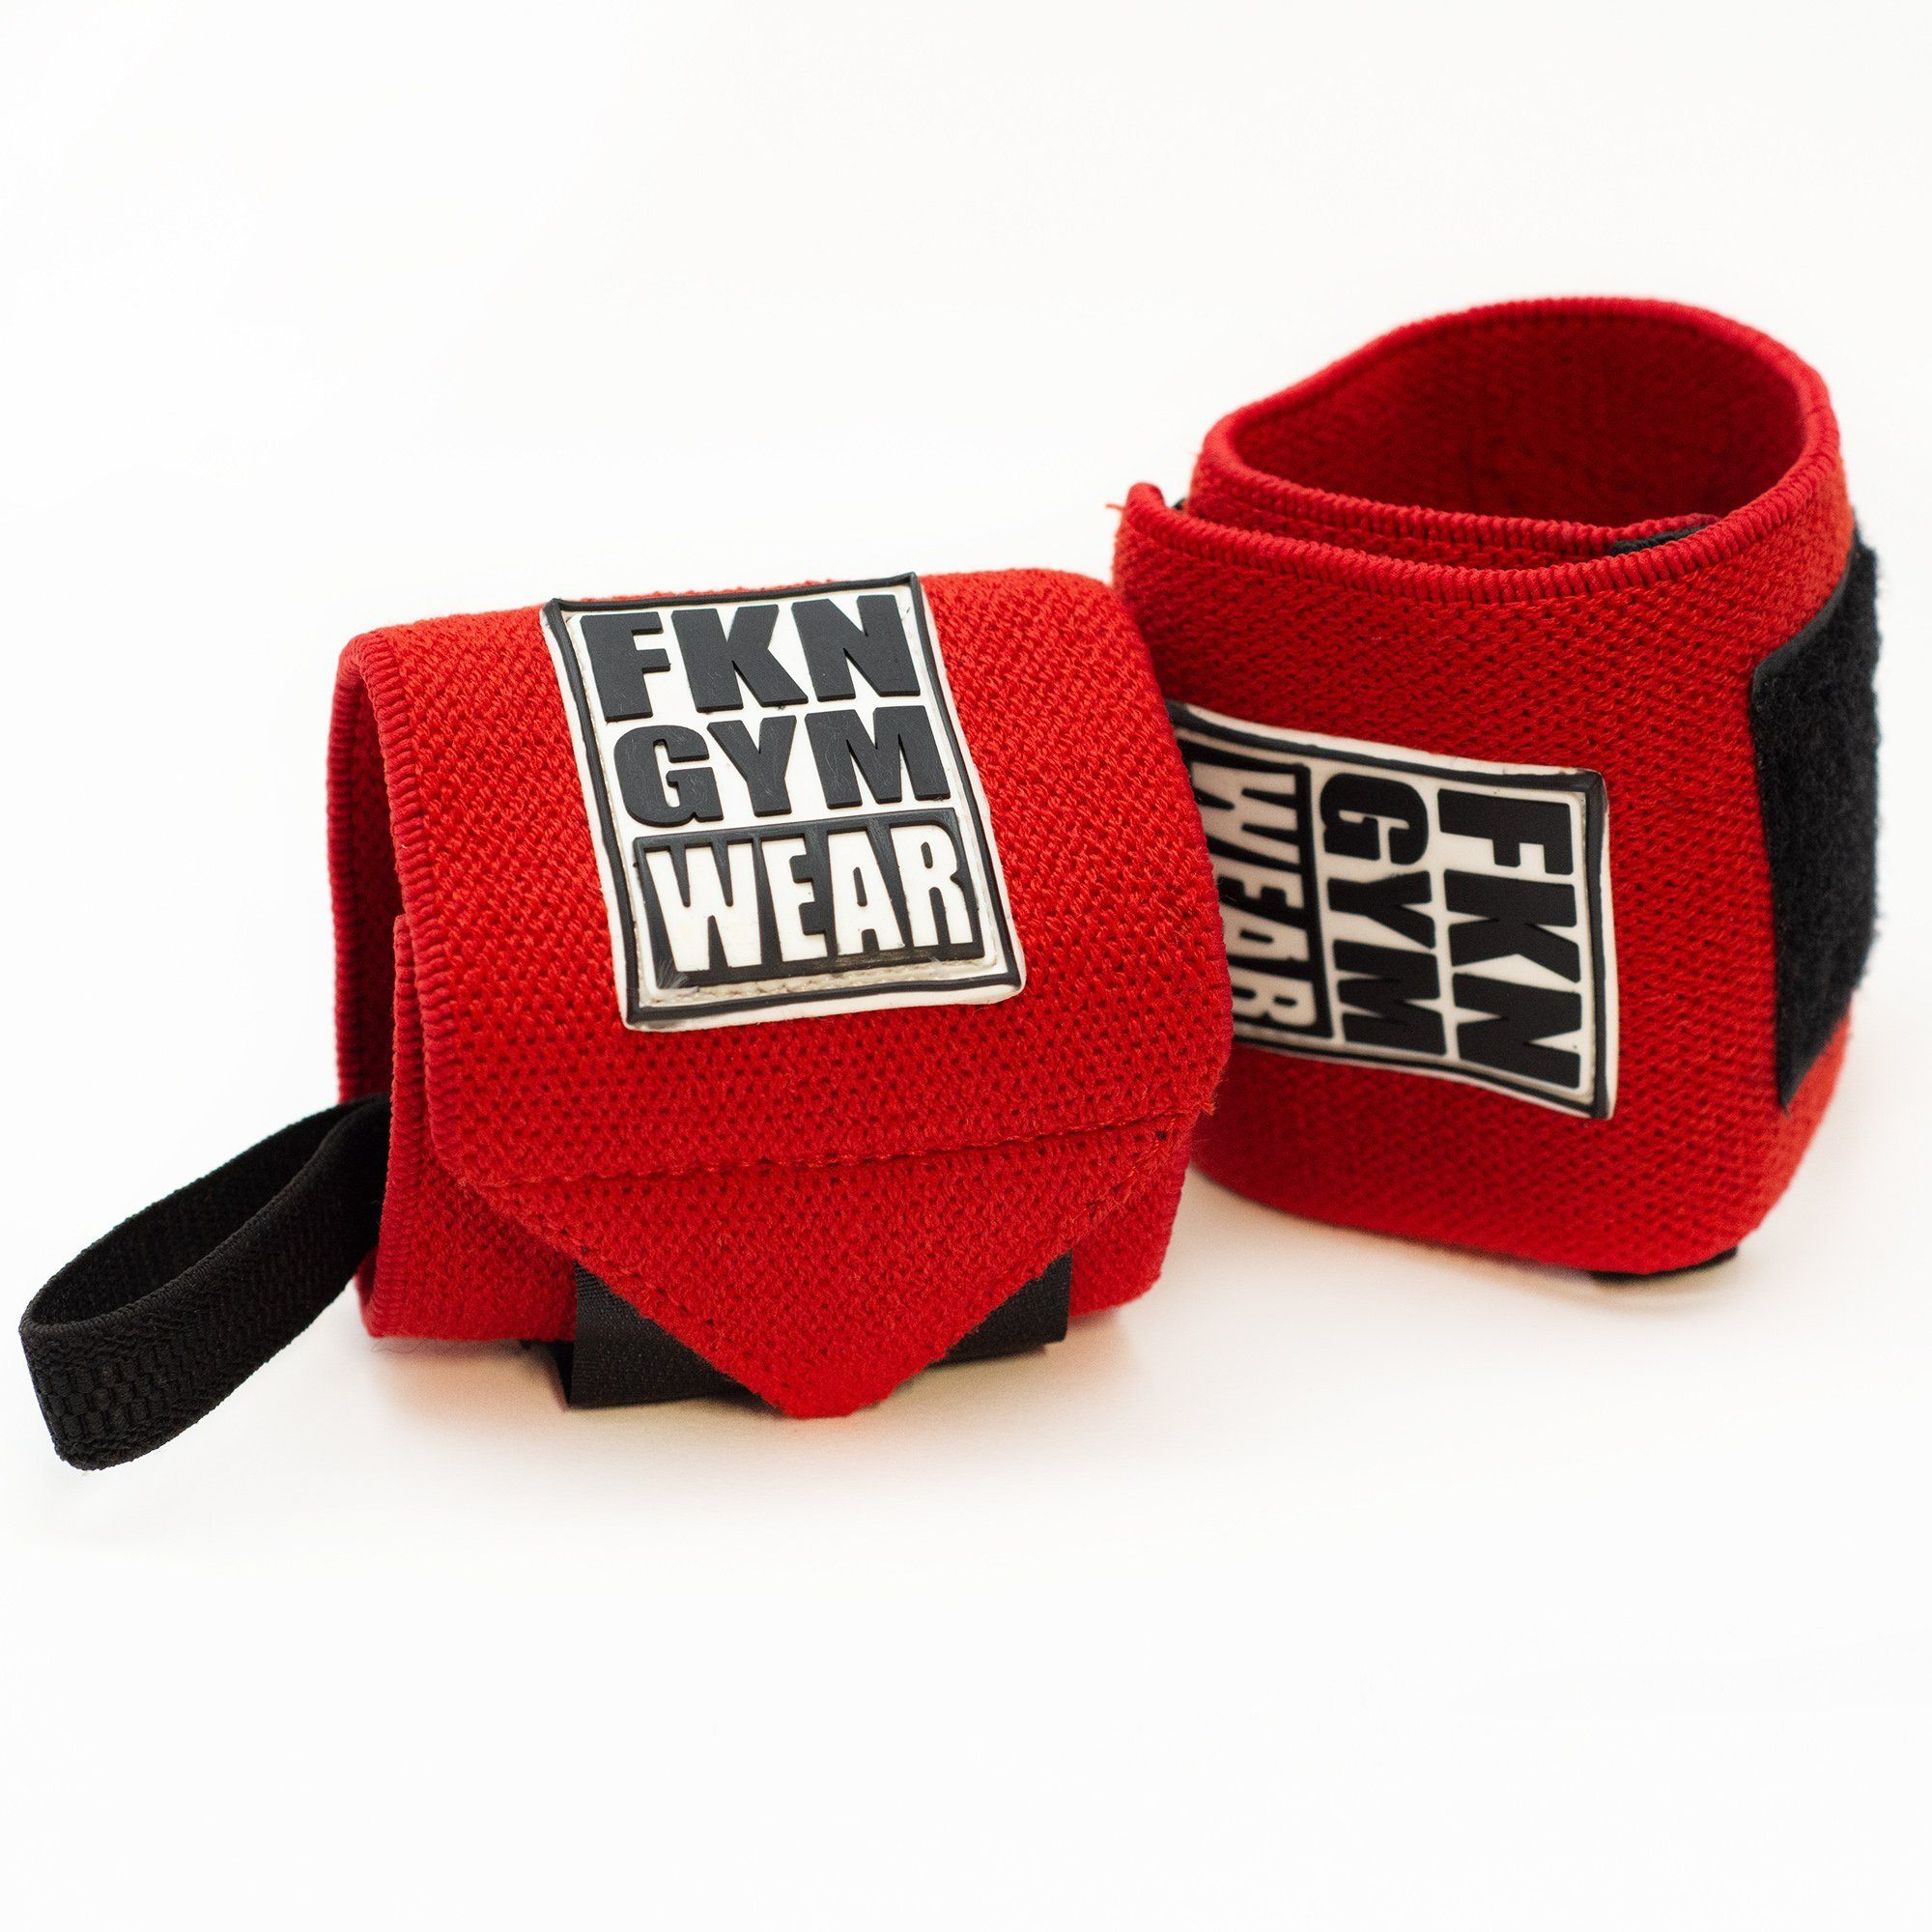 FKN Gym Wear Wrist Wraps | Red